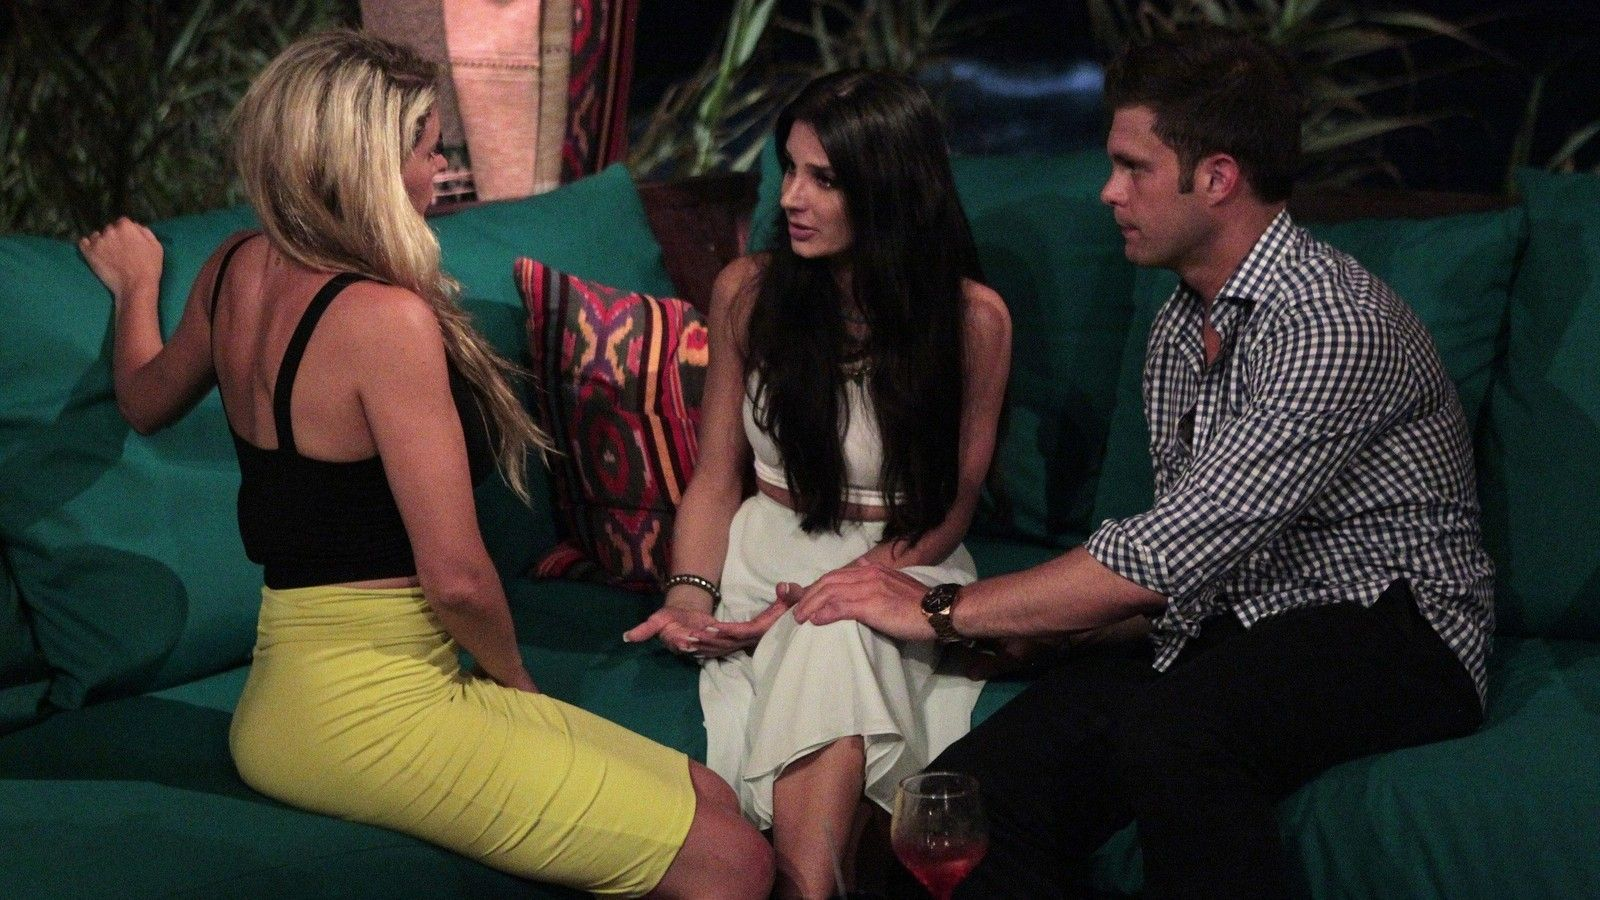 Bachelor in Paradise: When Becca Kufrin Shows Up, Ex